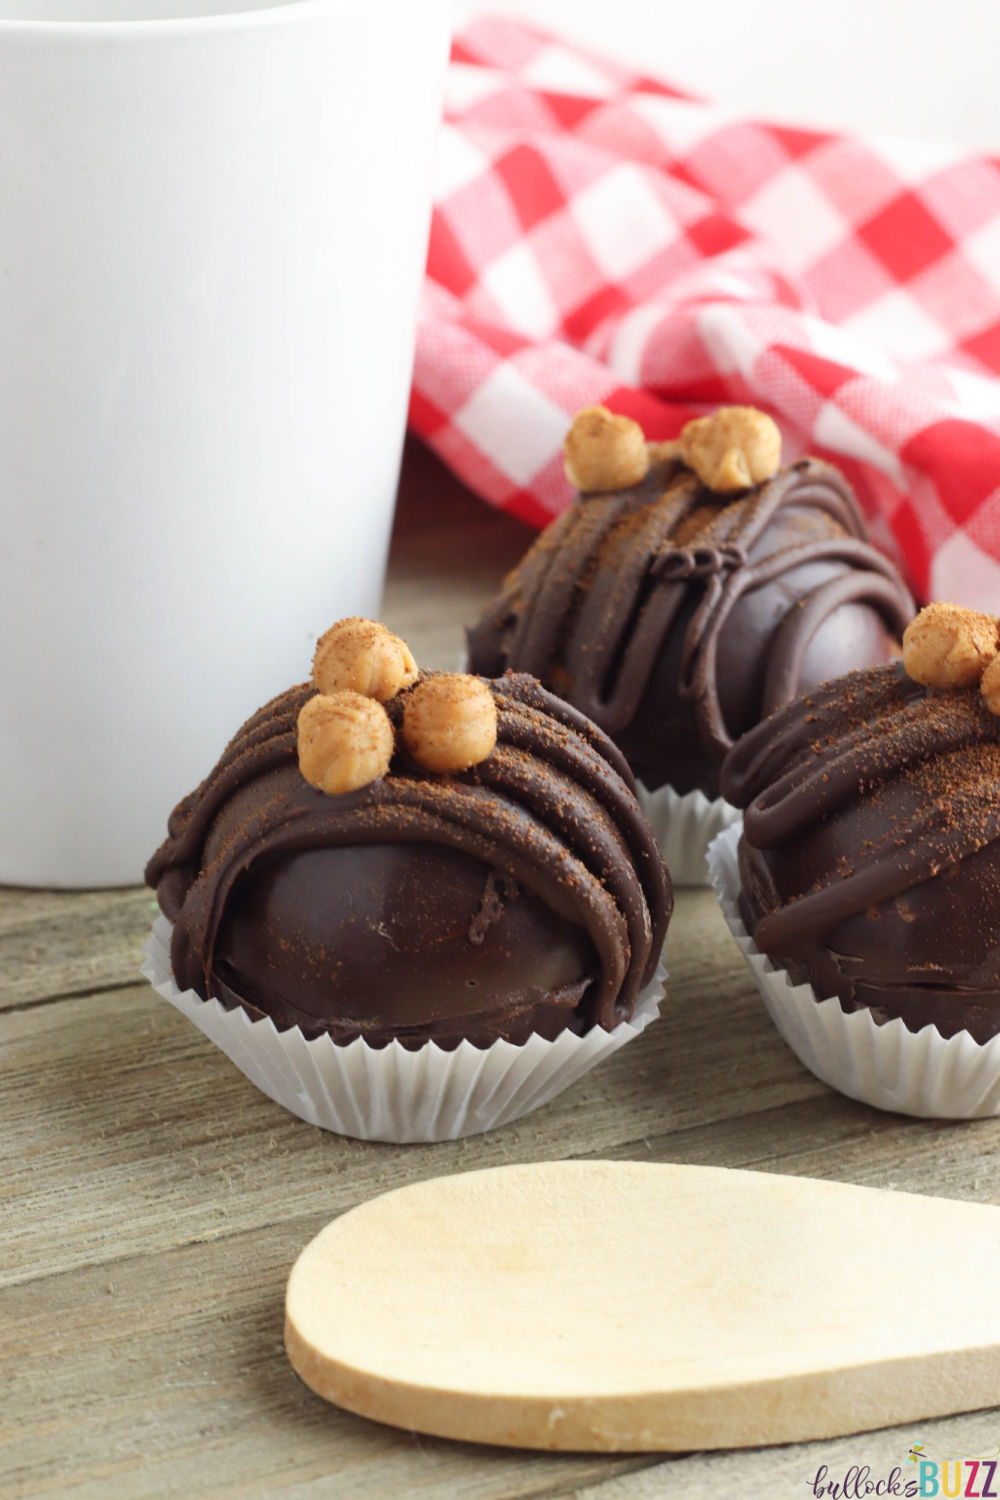 This mouth-watering Caramel Mocha Coffee Bomb recipe makes for a tasty start to your day! #coffeebomb #espressobomb #recipes #caramelmocha #coffee